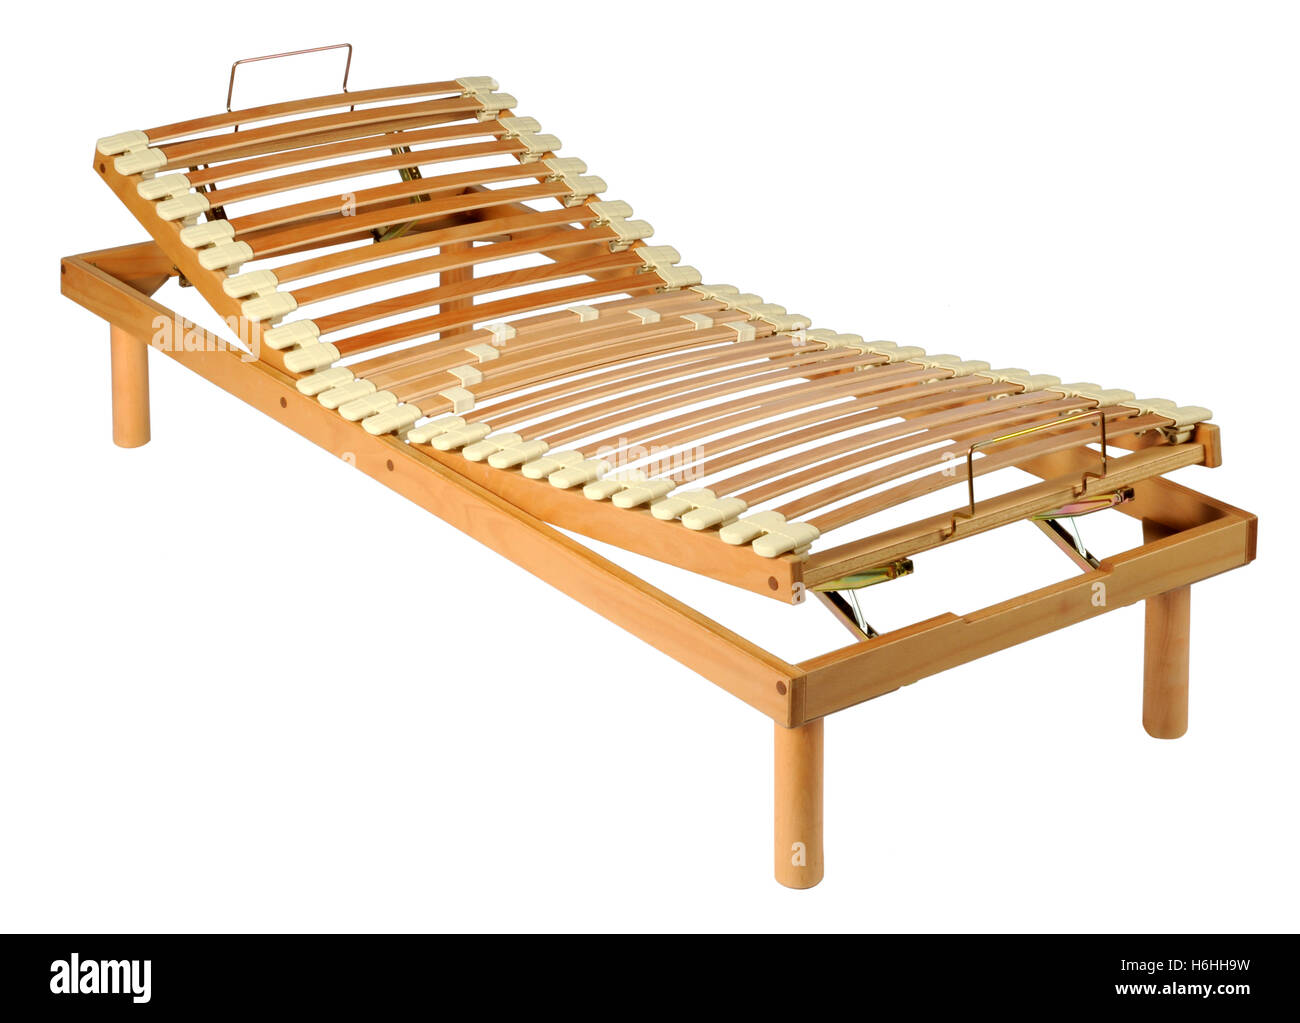 Wooden orthopedic net on an adjustable wood bed frame isolated on white in a three quarter view - Stock Image